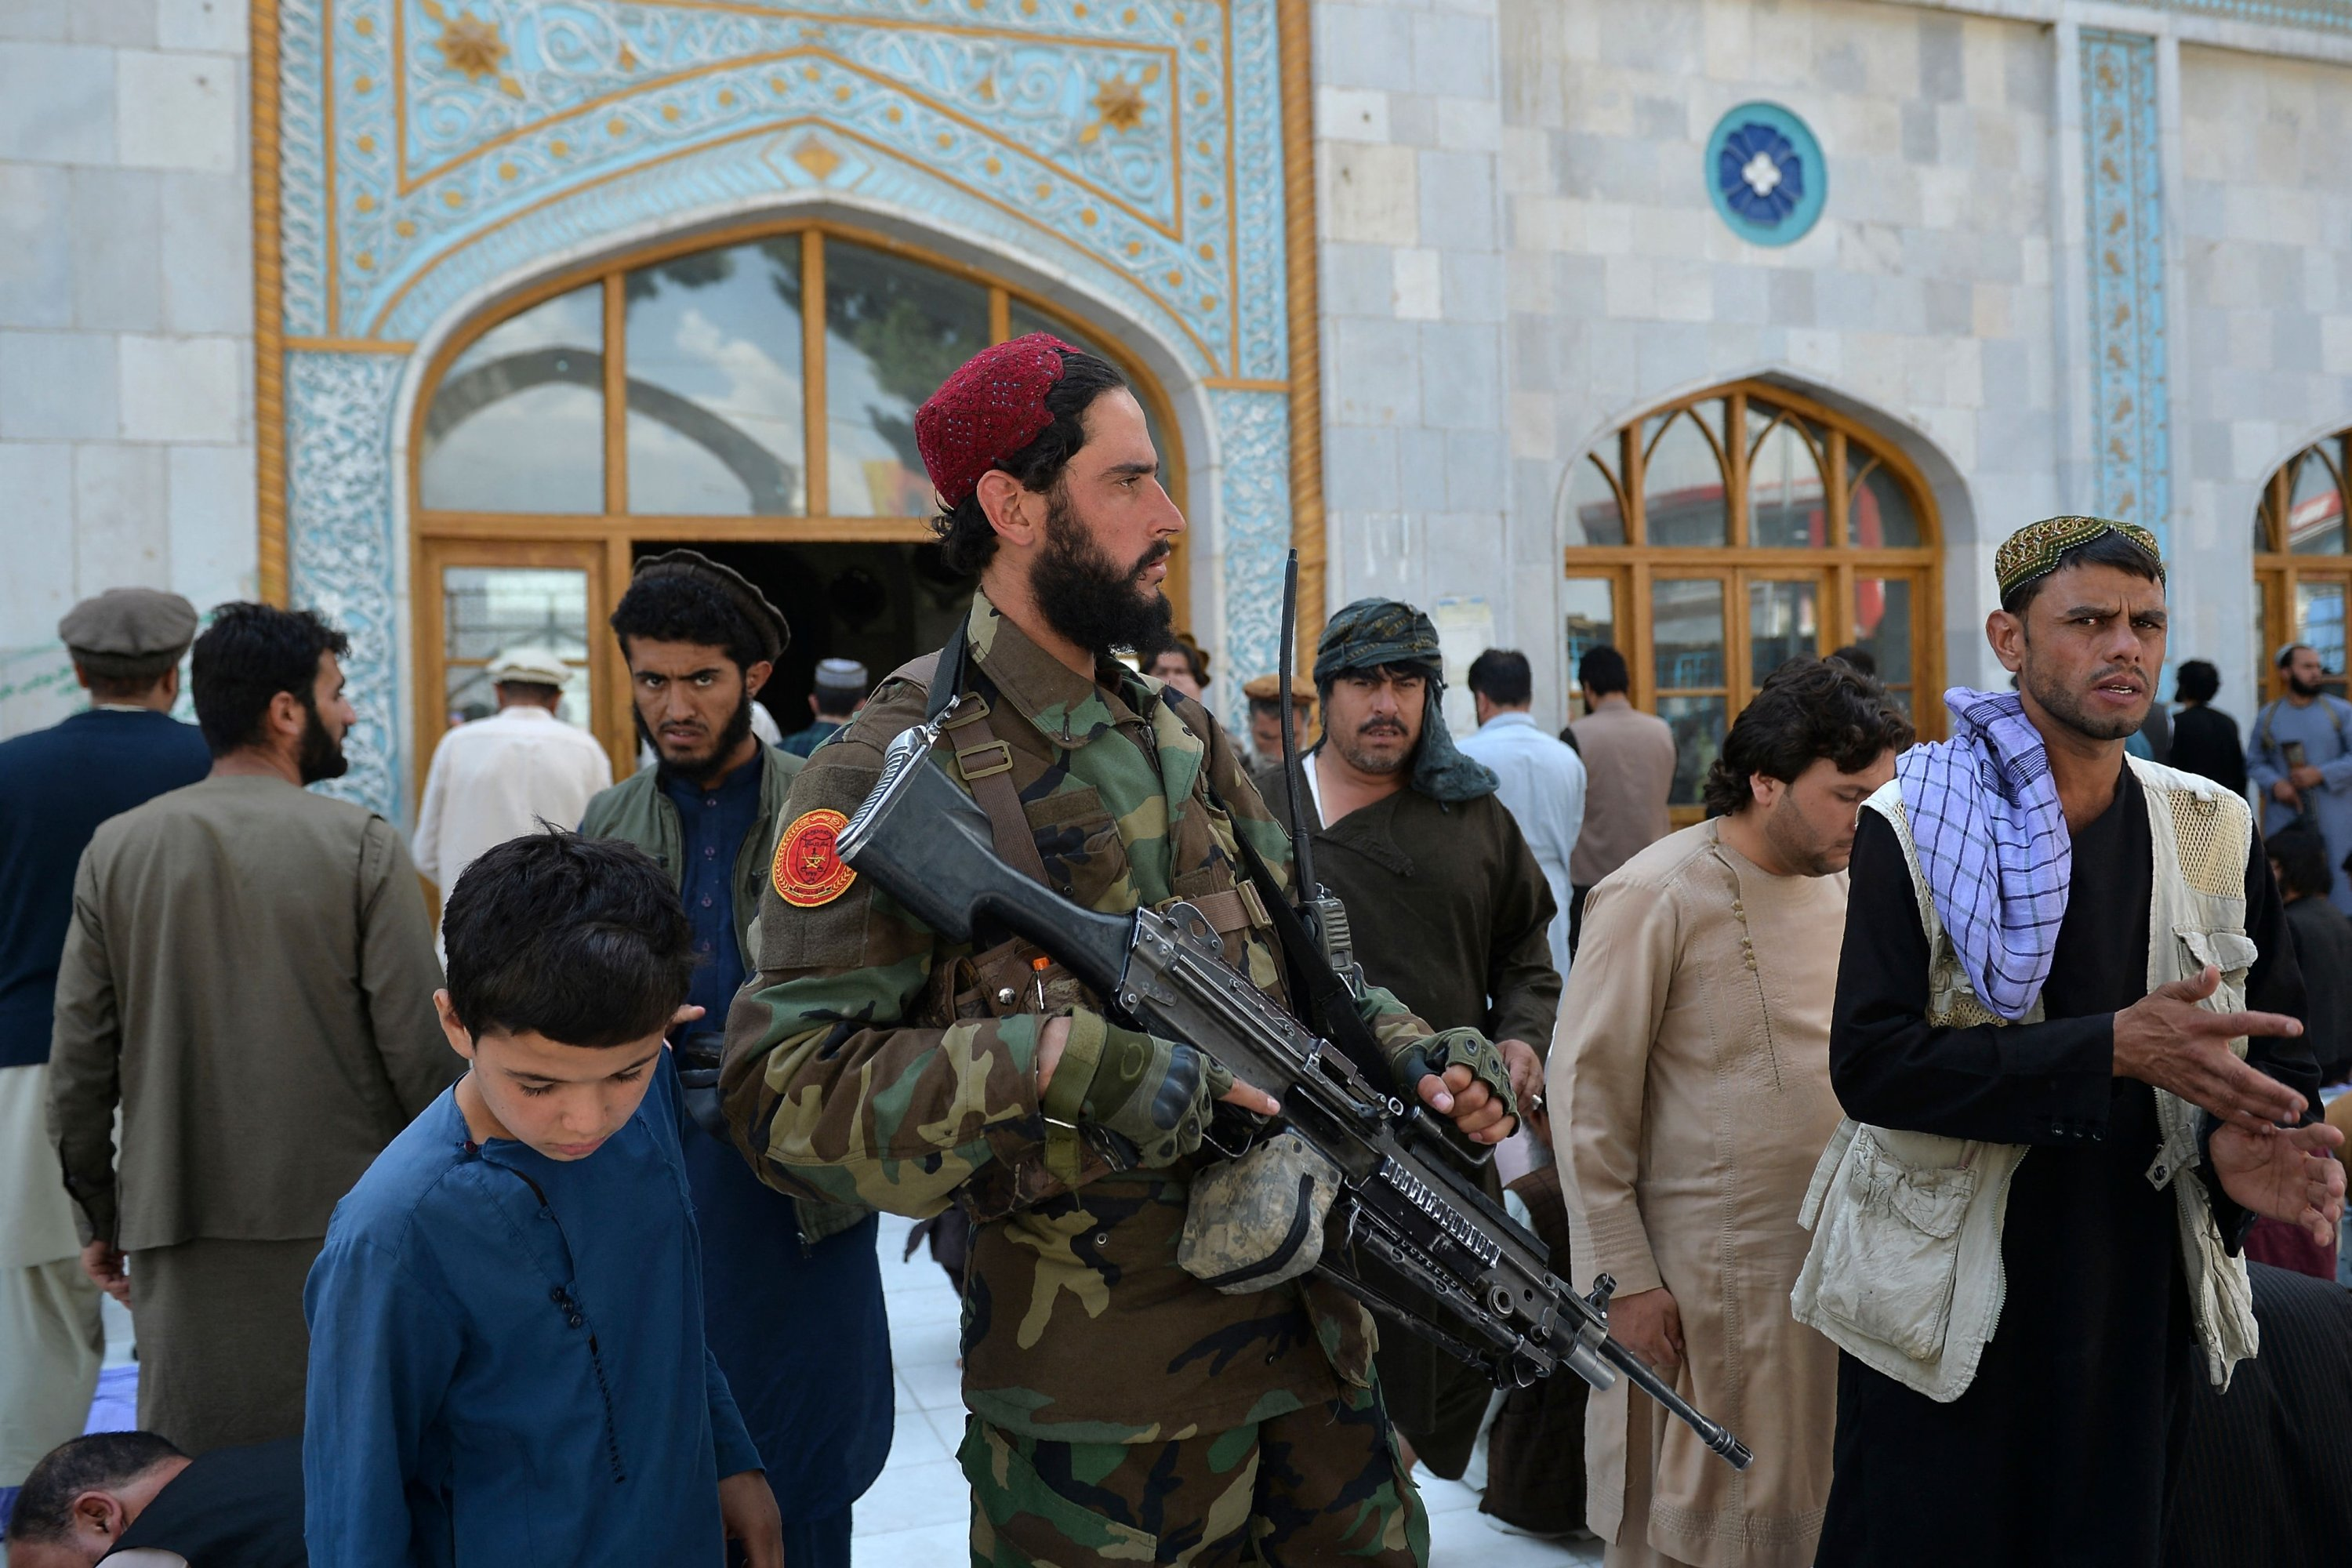 An armed Taliban fighter stands guard as devotees leave after Friday prayers at the Pul-e Khishti Mosque in Kabul, Afghanistan, Sept. 3, 2021. (AFP Photo)